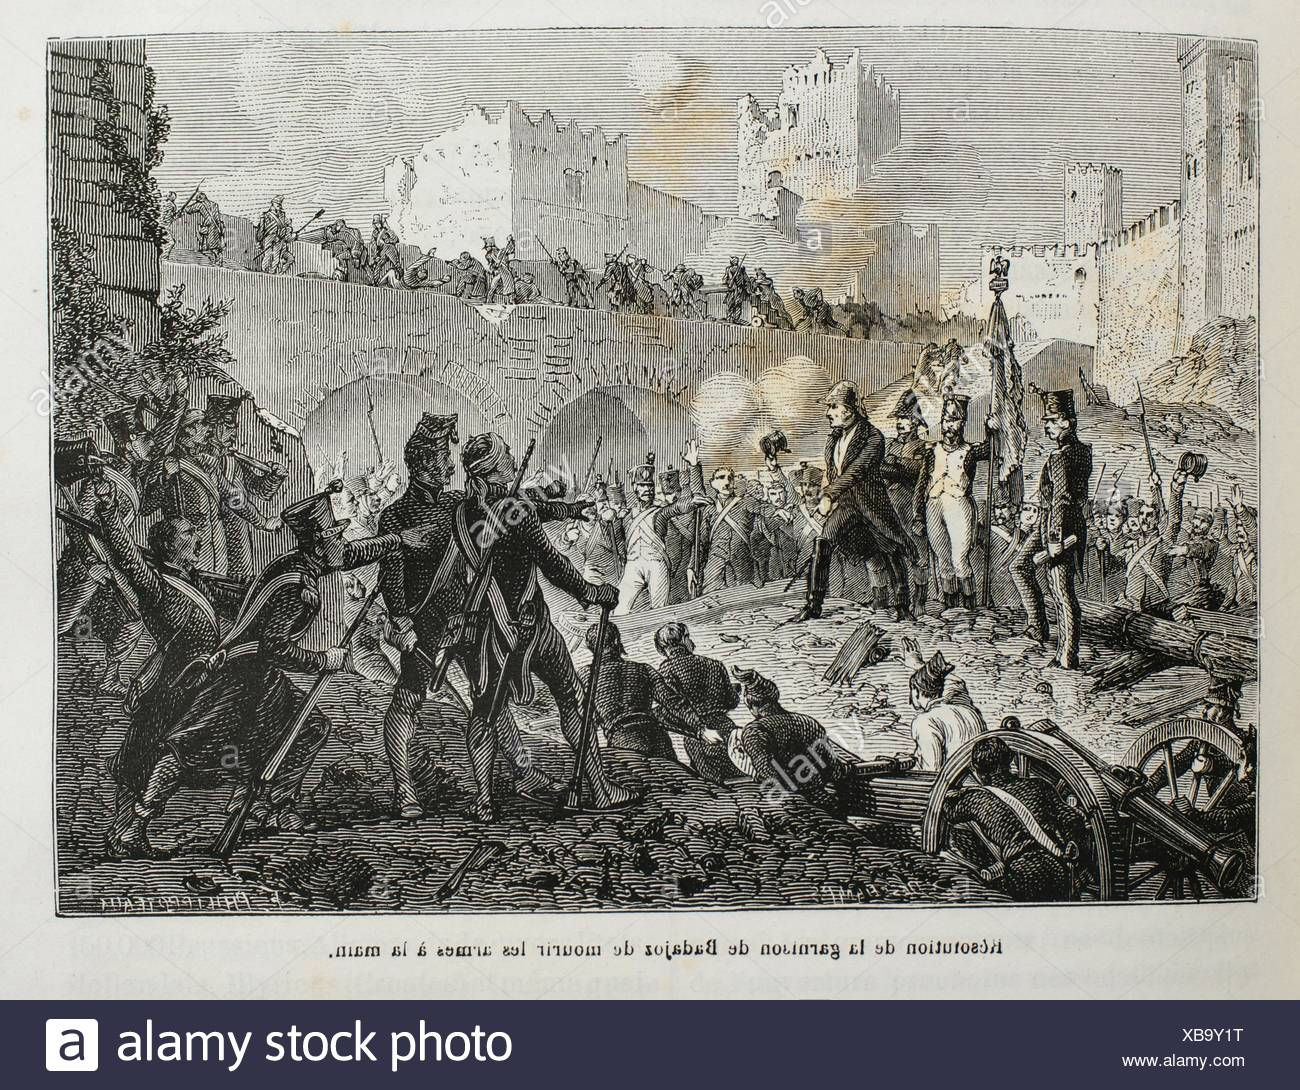 France, Spain-History-19th Century - resolution of the spanish army deciding not to surrender to the Napoleon troops, at Badajoz - Stock Image